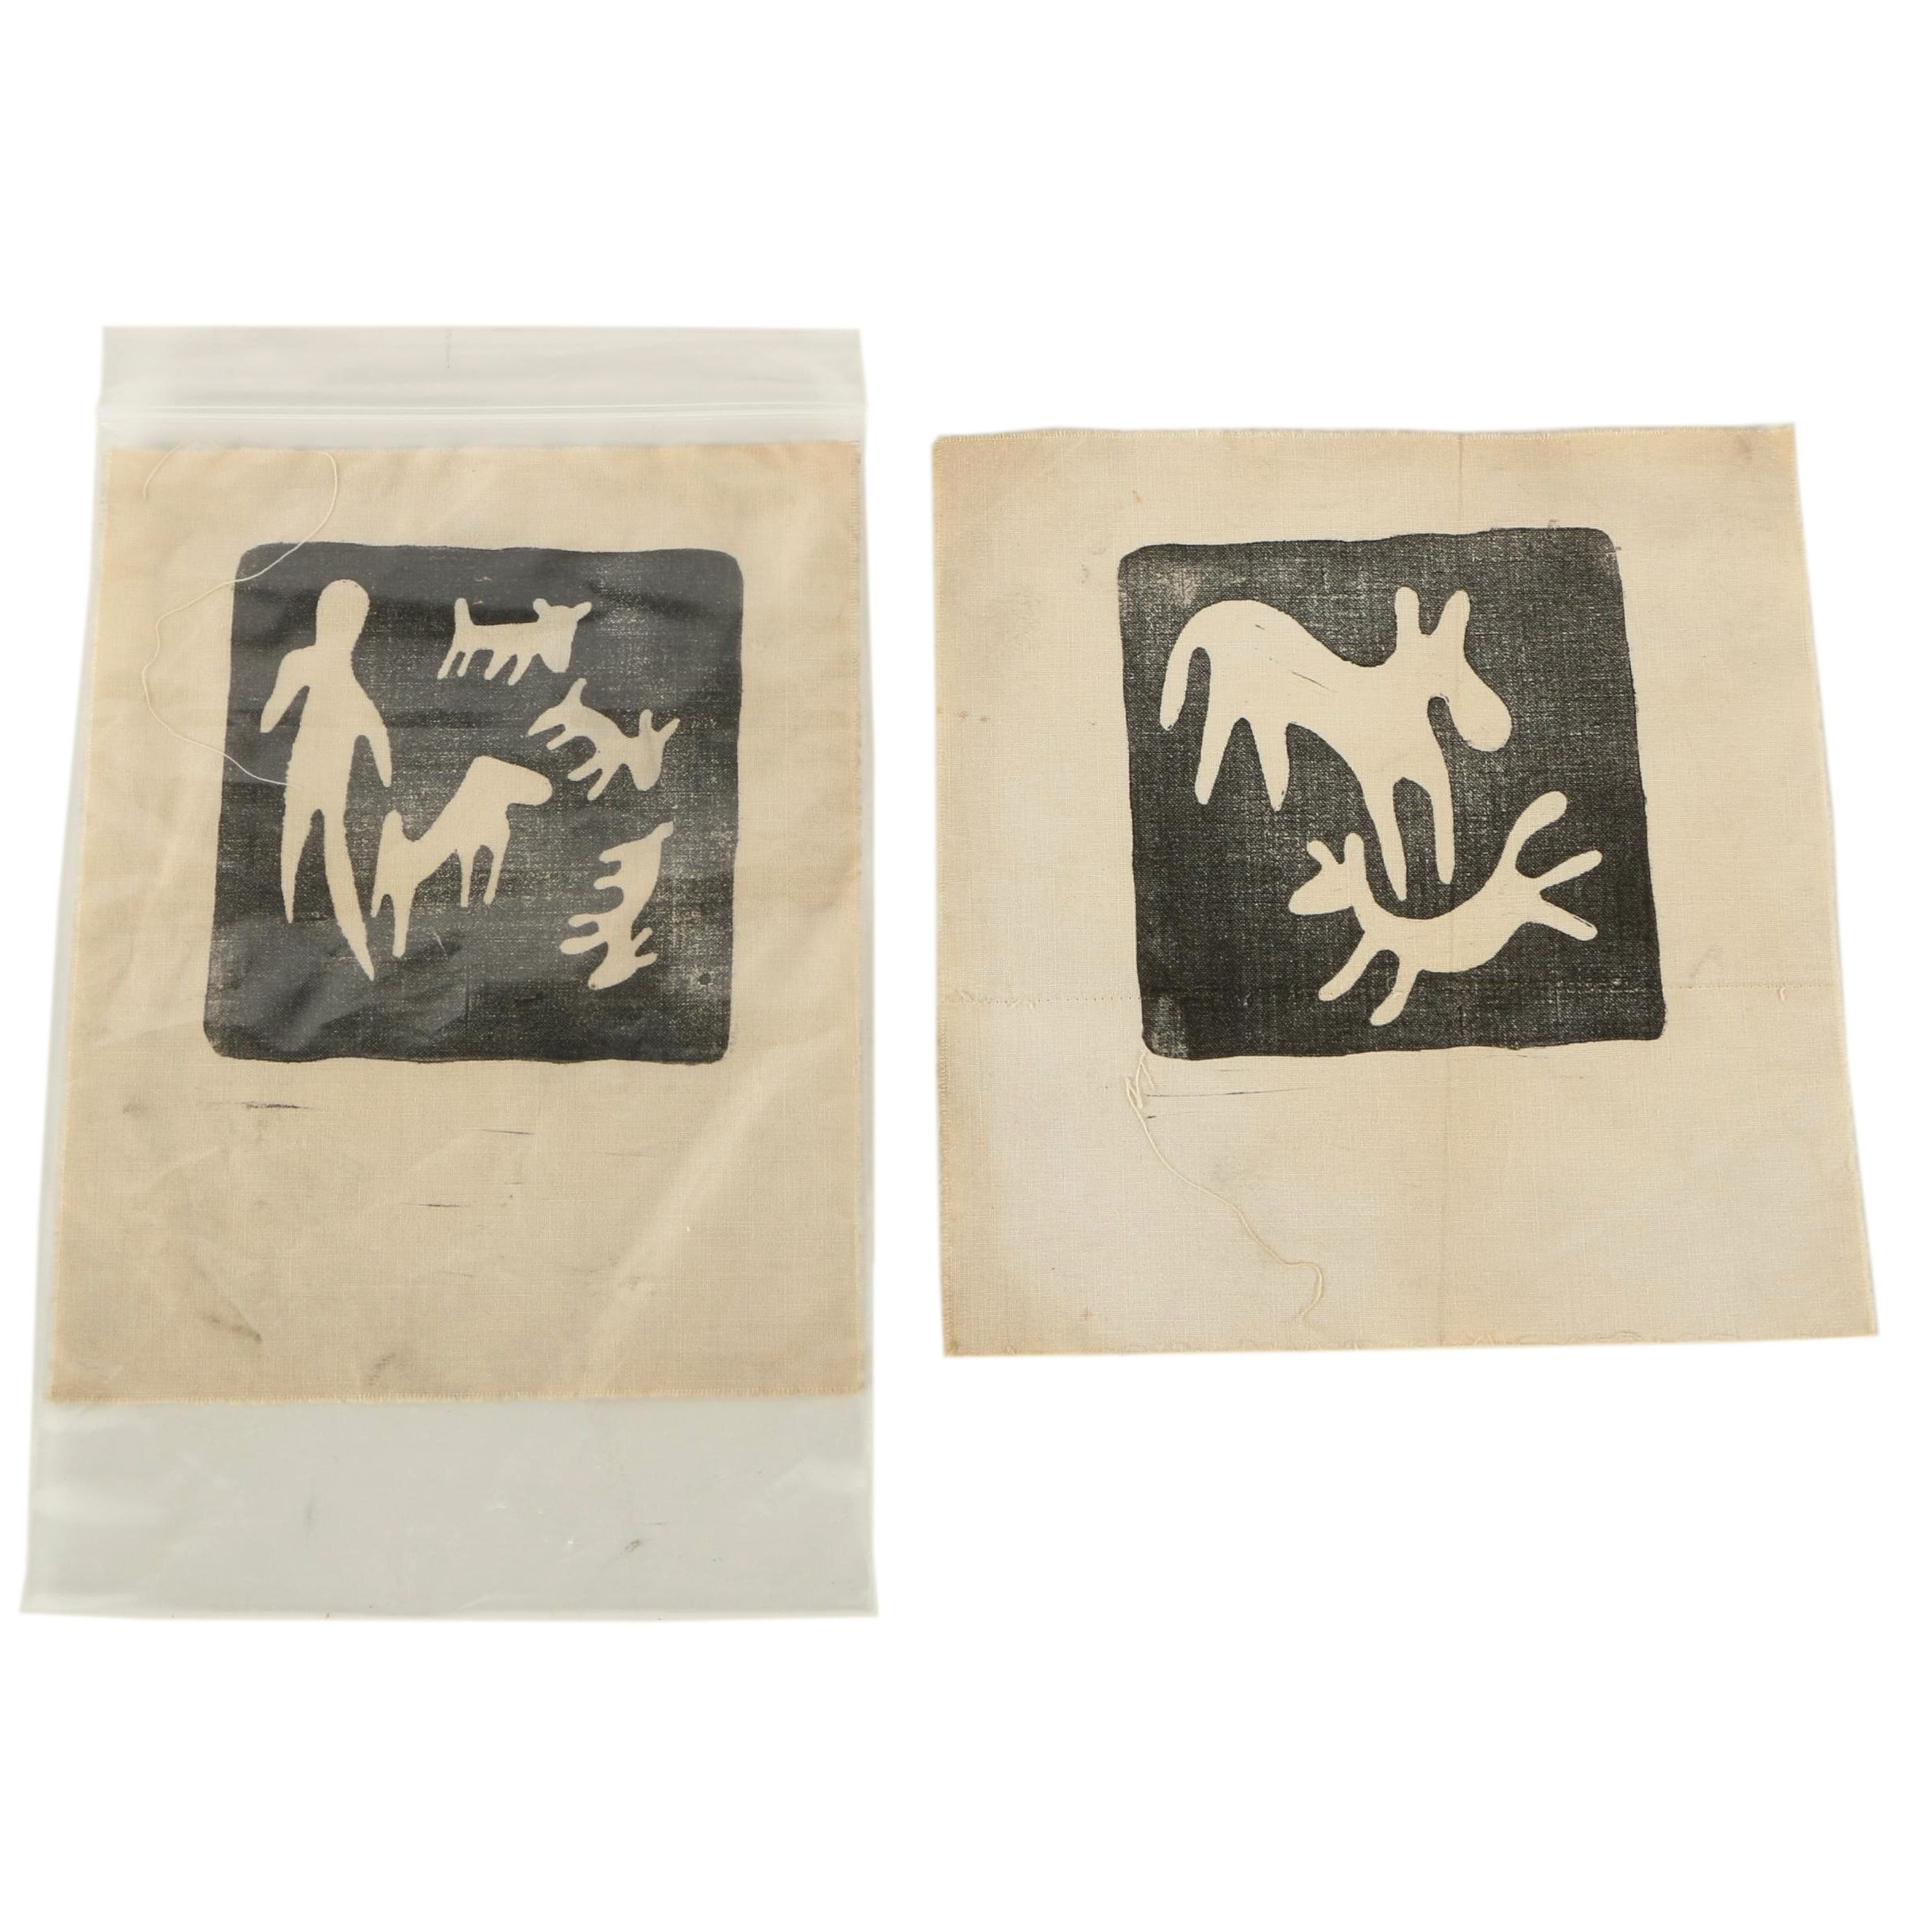 Indigenous Inspired Reproduction Prints on Cloth